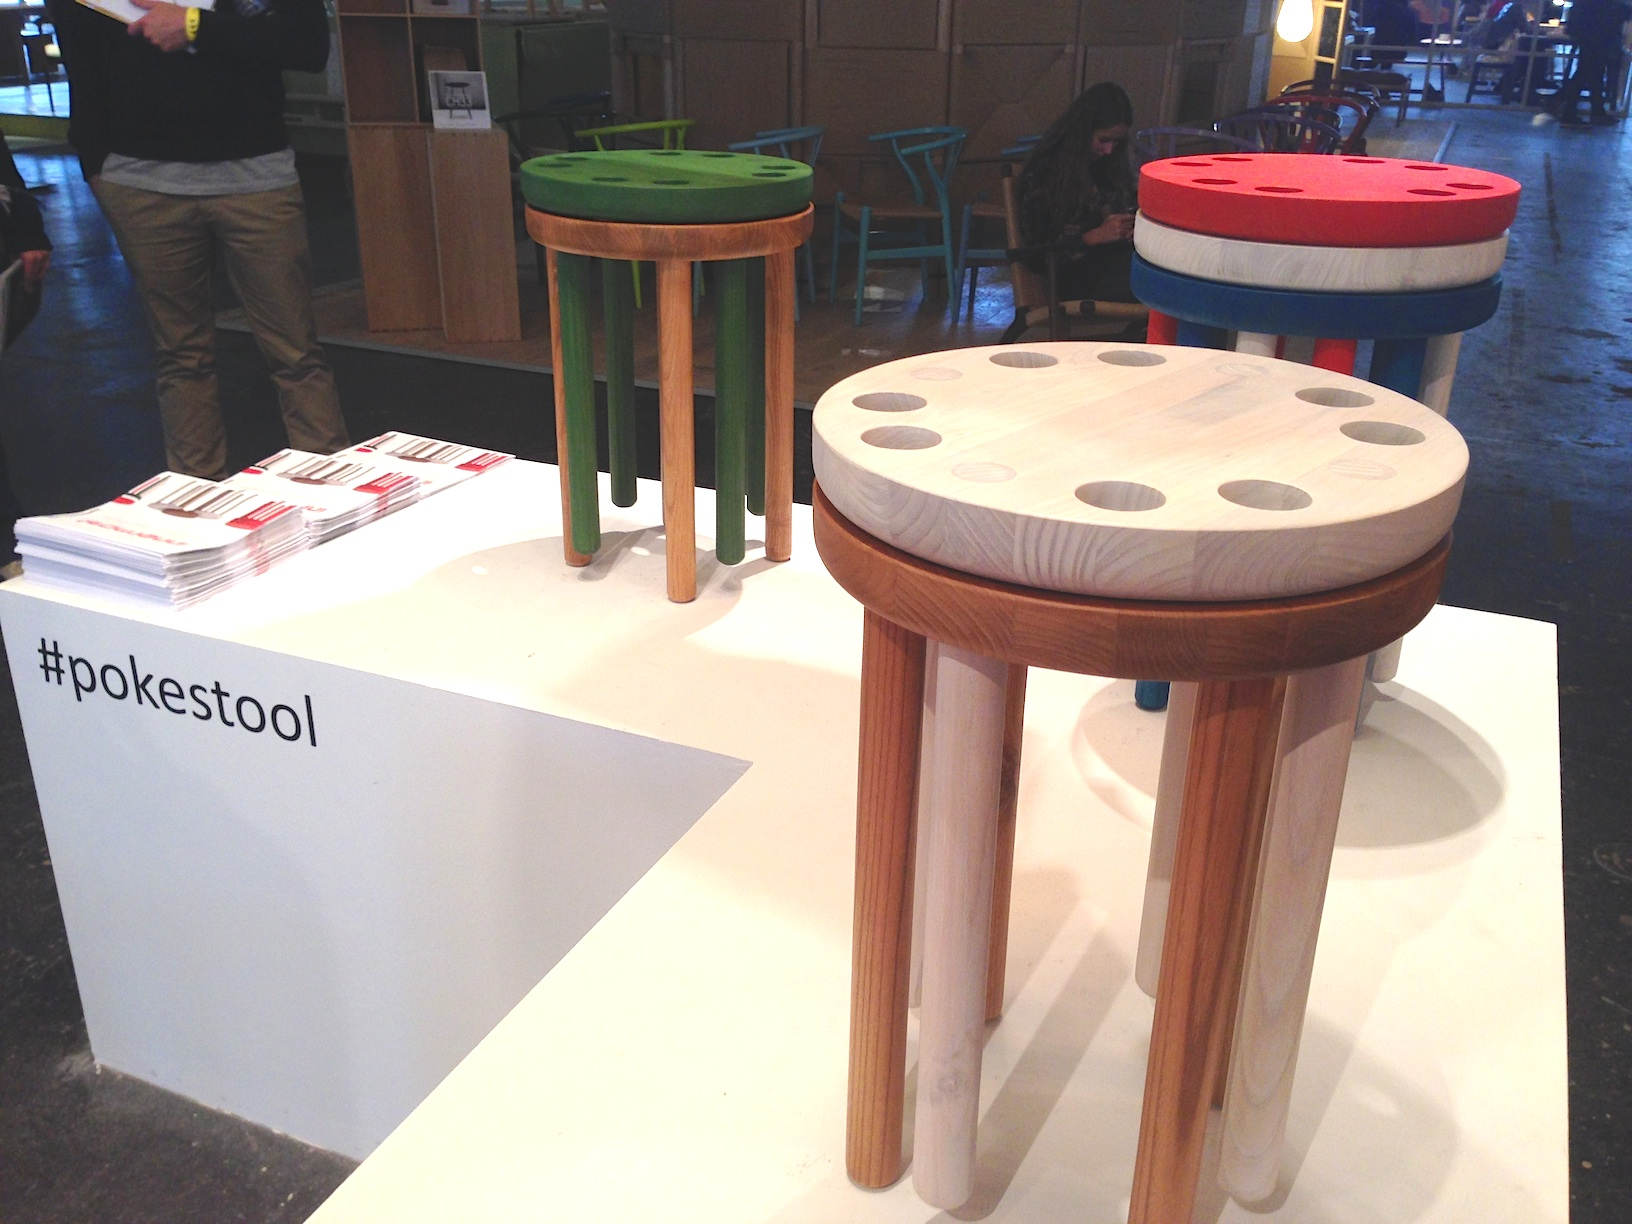 Design Junction London 2013 - pokestool